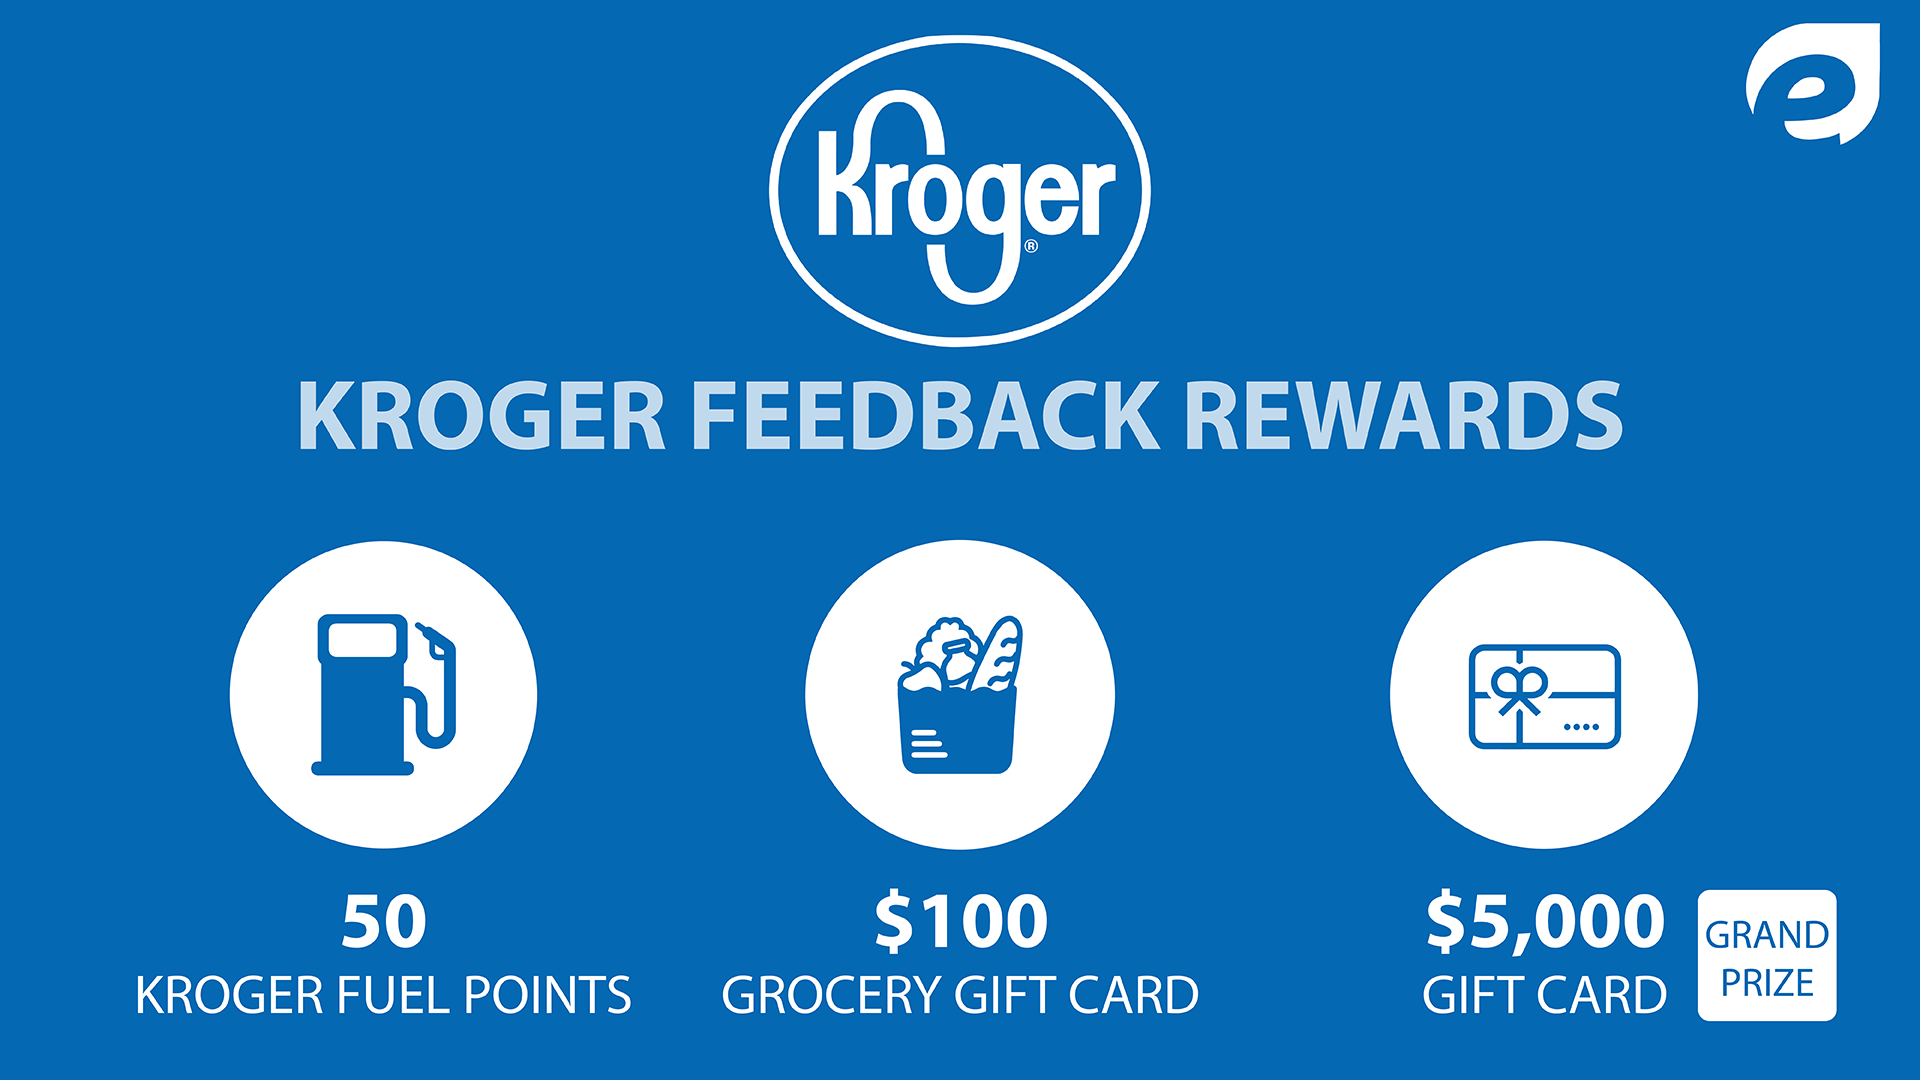 kroger feedback rewards